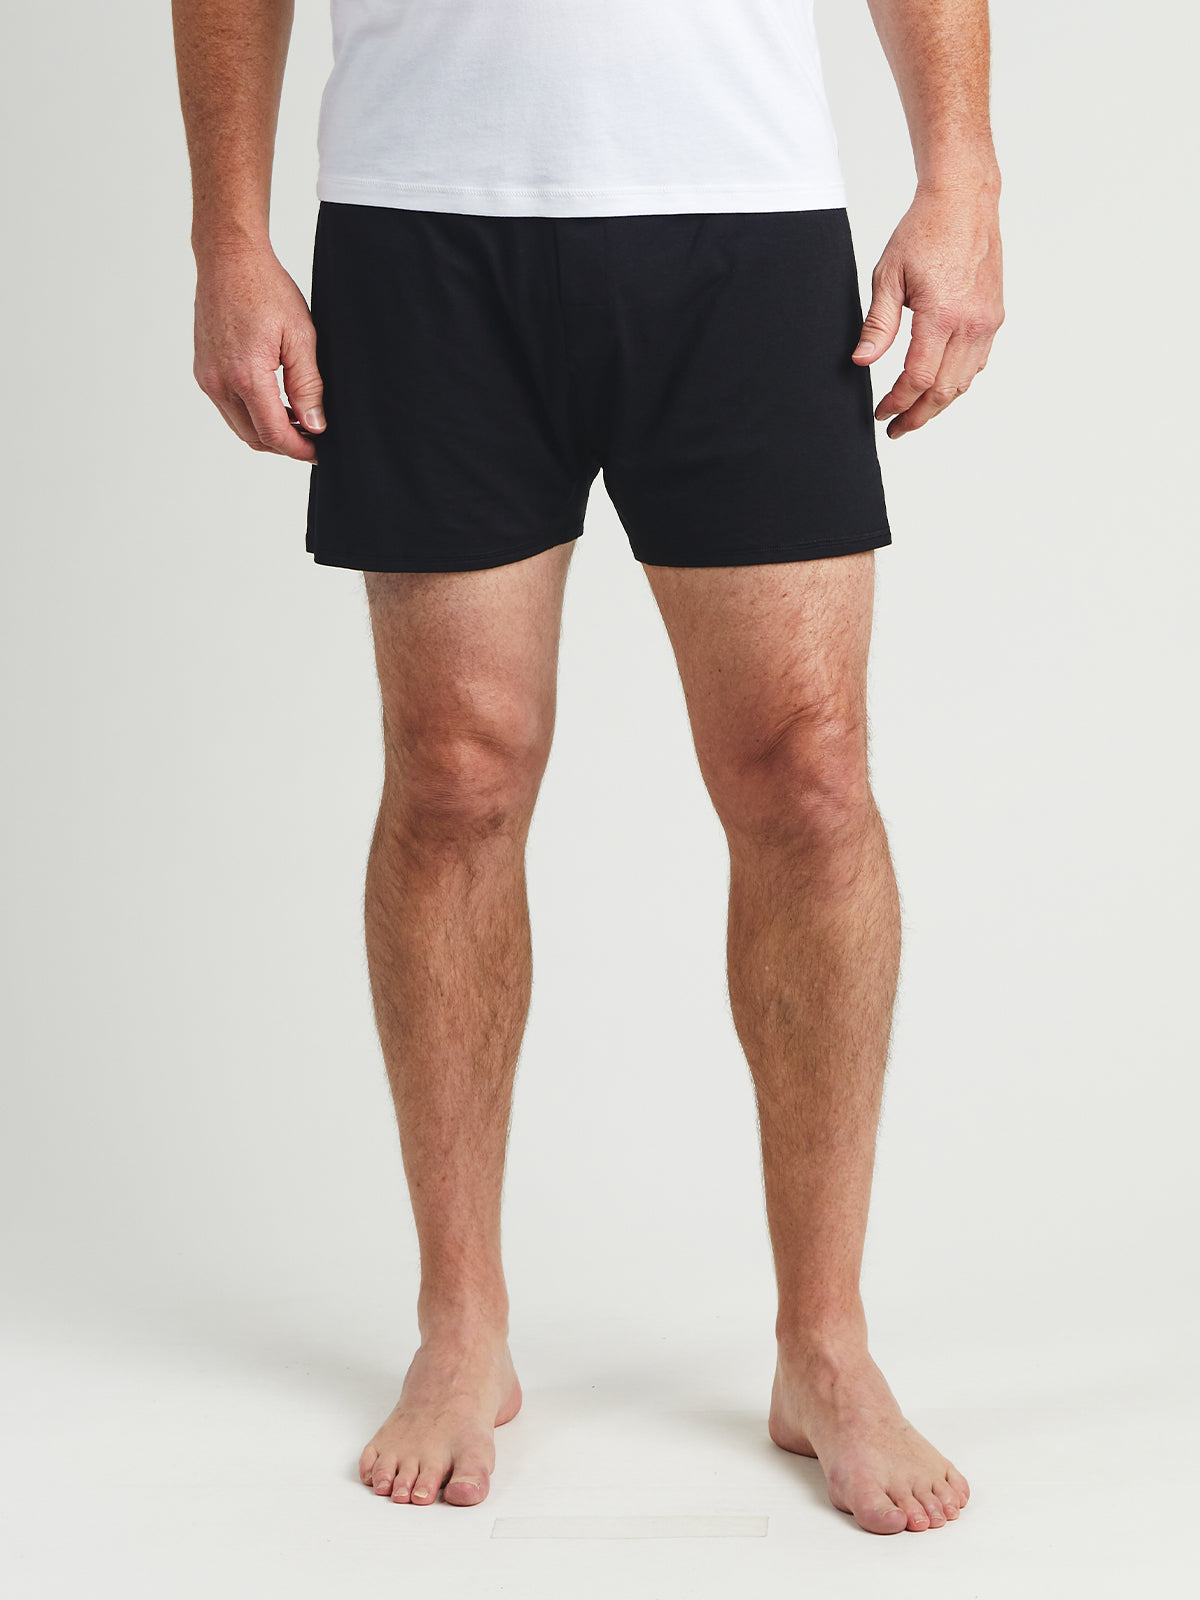 Elevated Loose Fit Boxer - tasc Performance (Black)